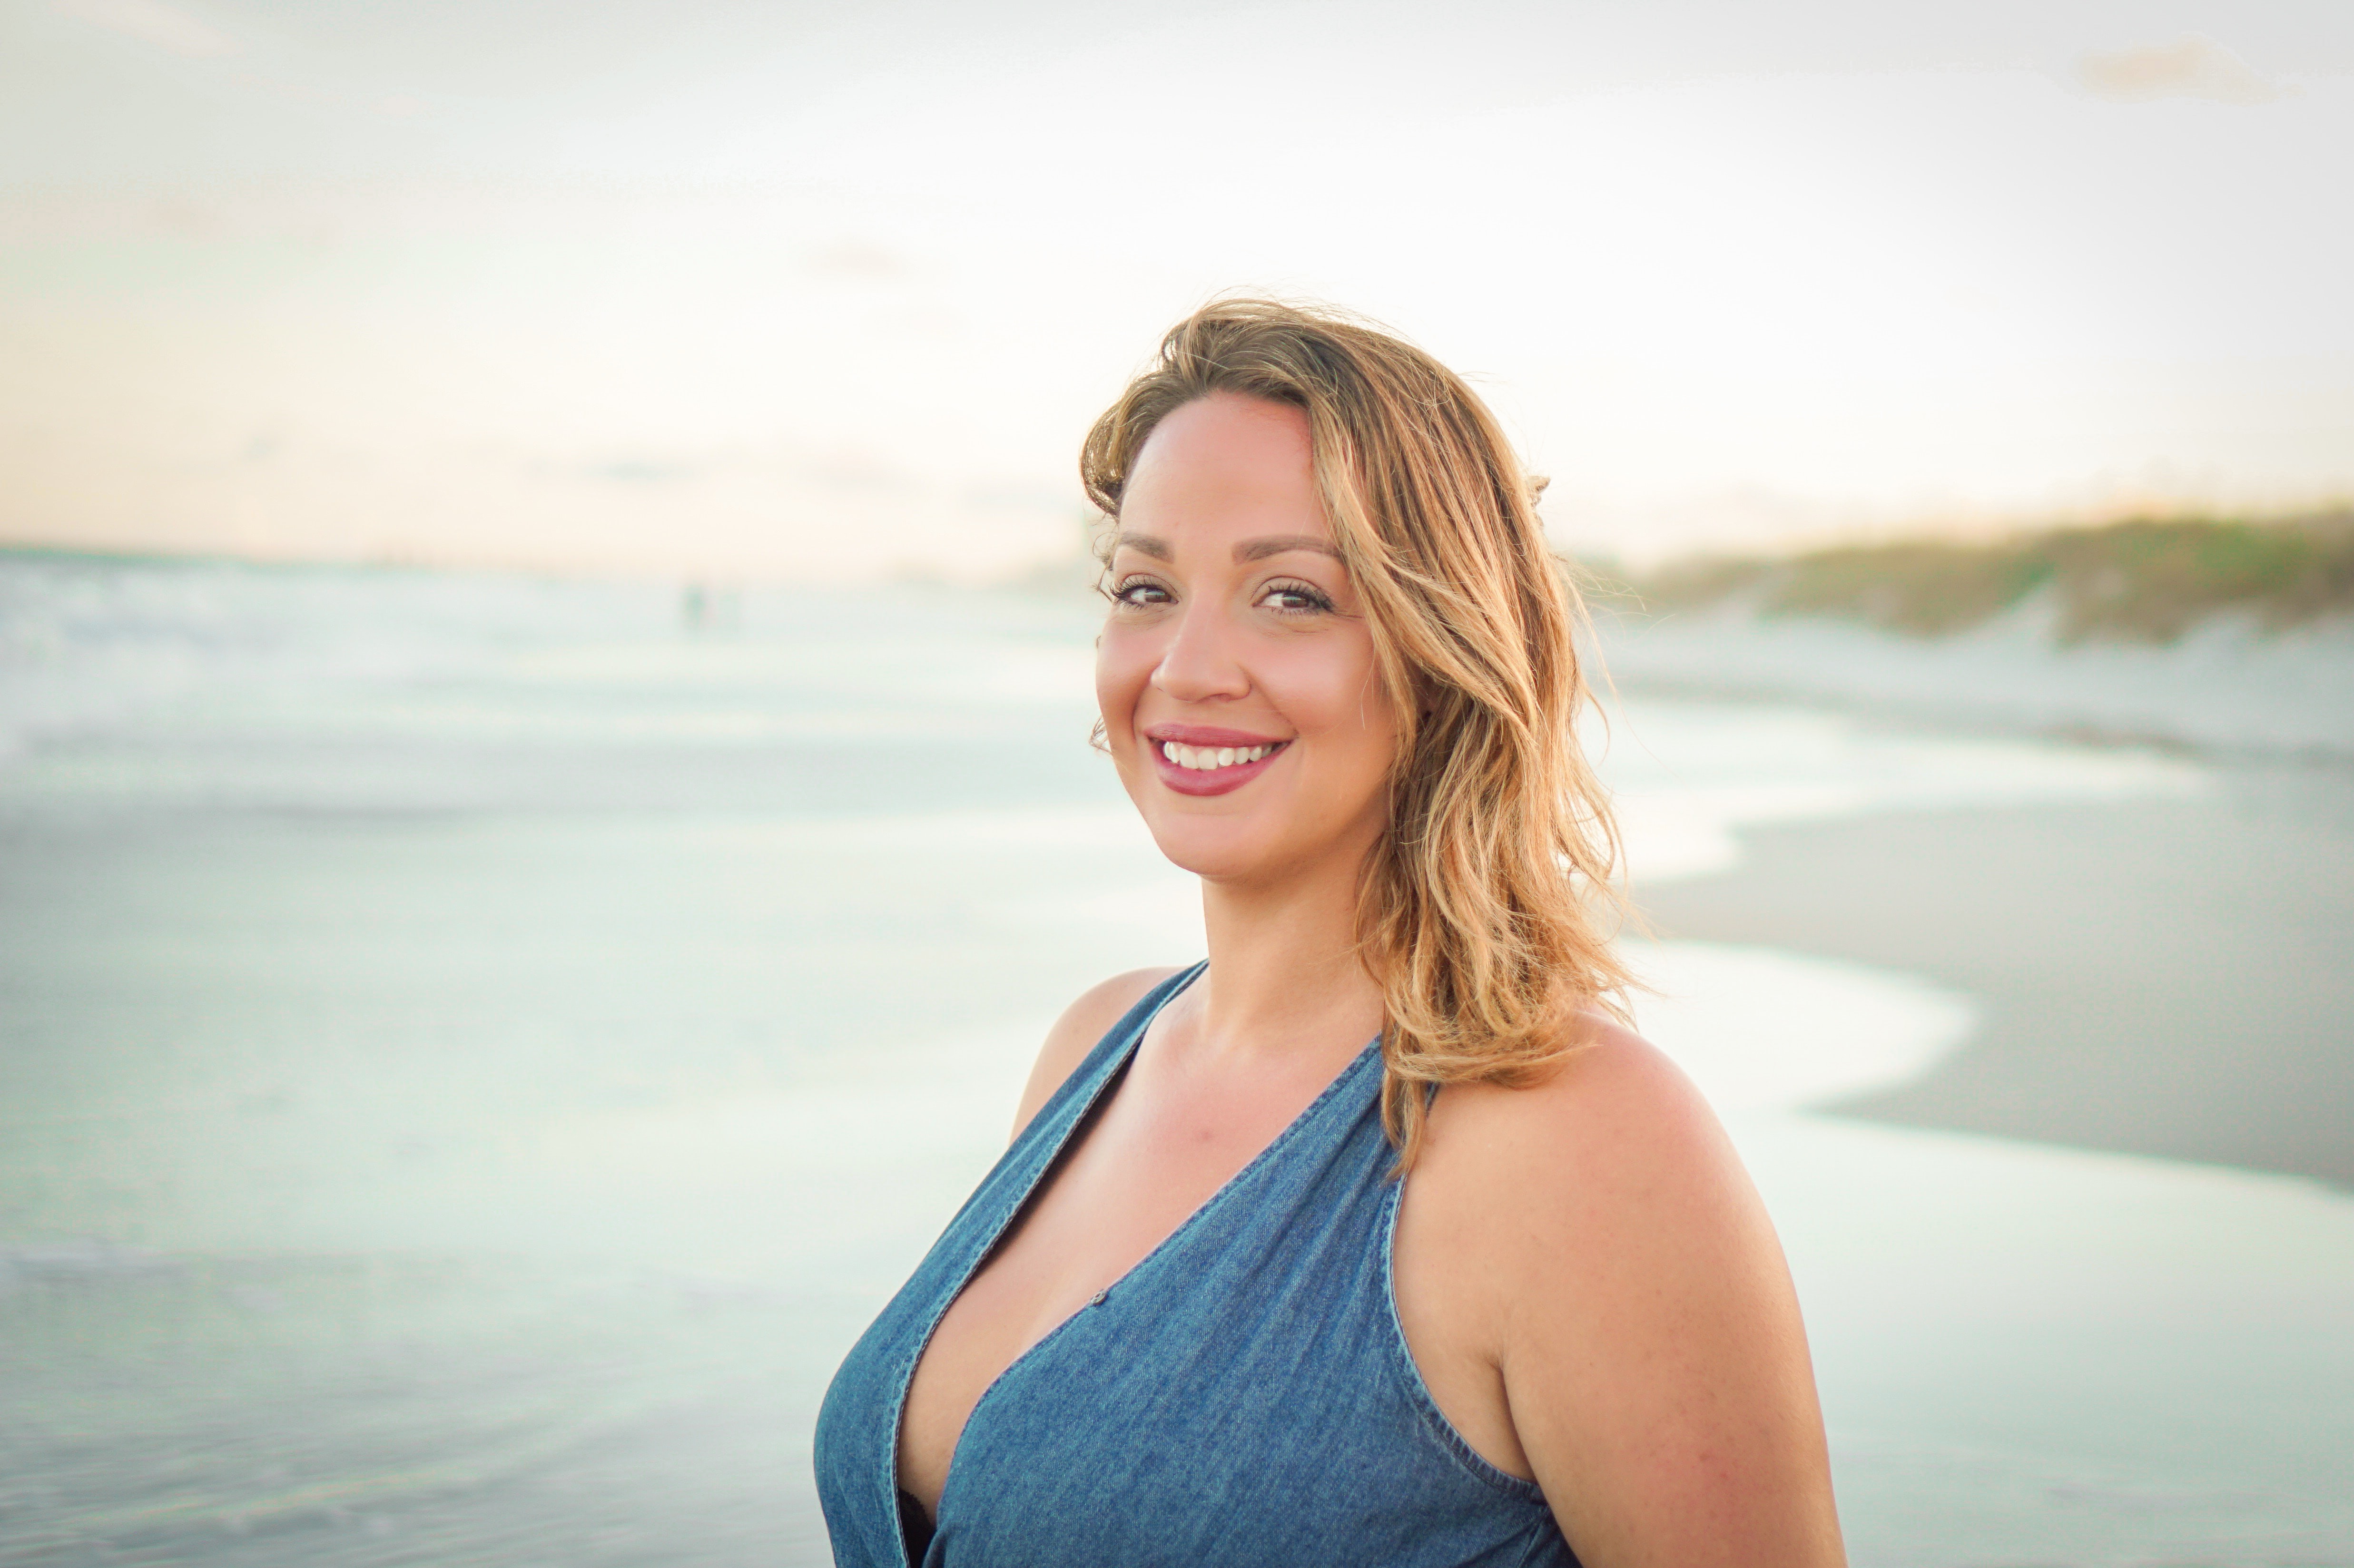 woman smiling with sea shore background